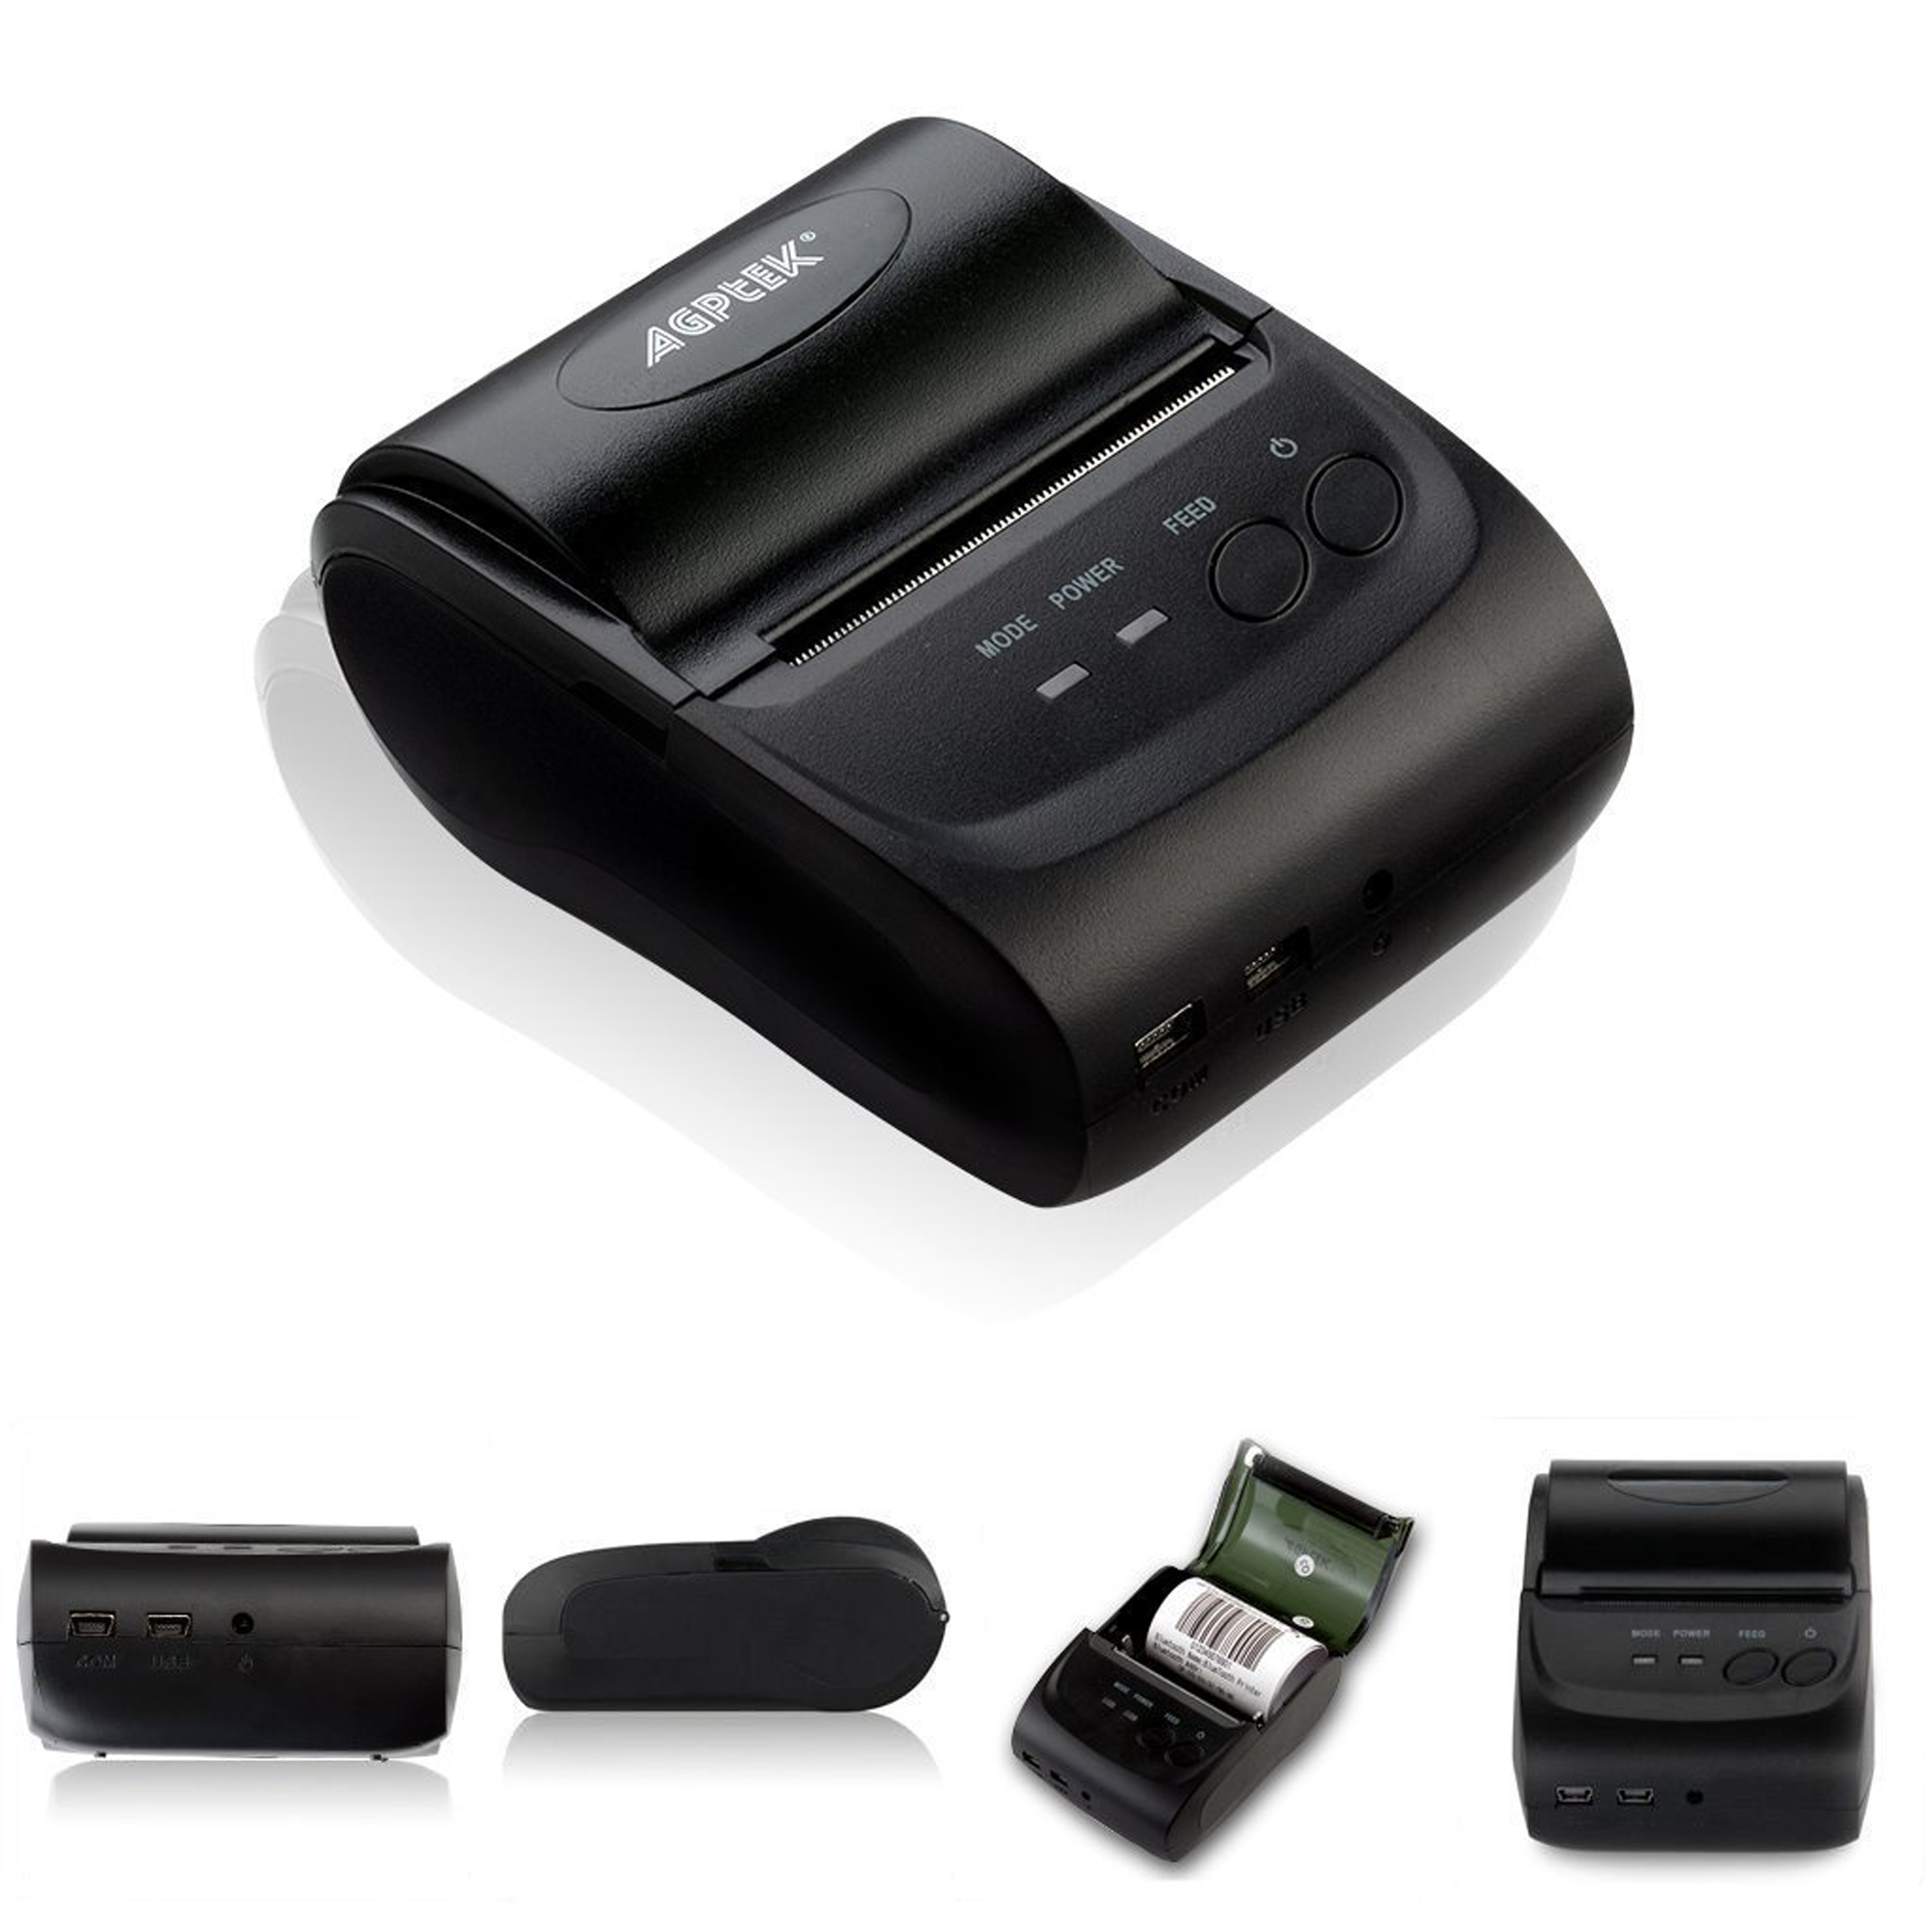 Bluetooth Wireless High-Speed, High-Resolution Pocket Photo Mobile Thermal Receipt Printer for Android IOS 58mm